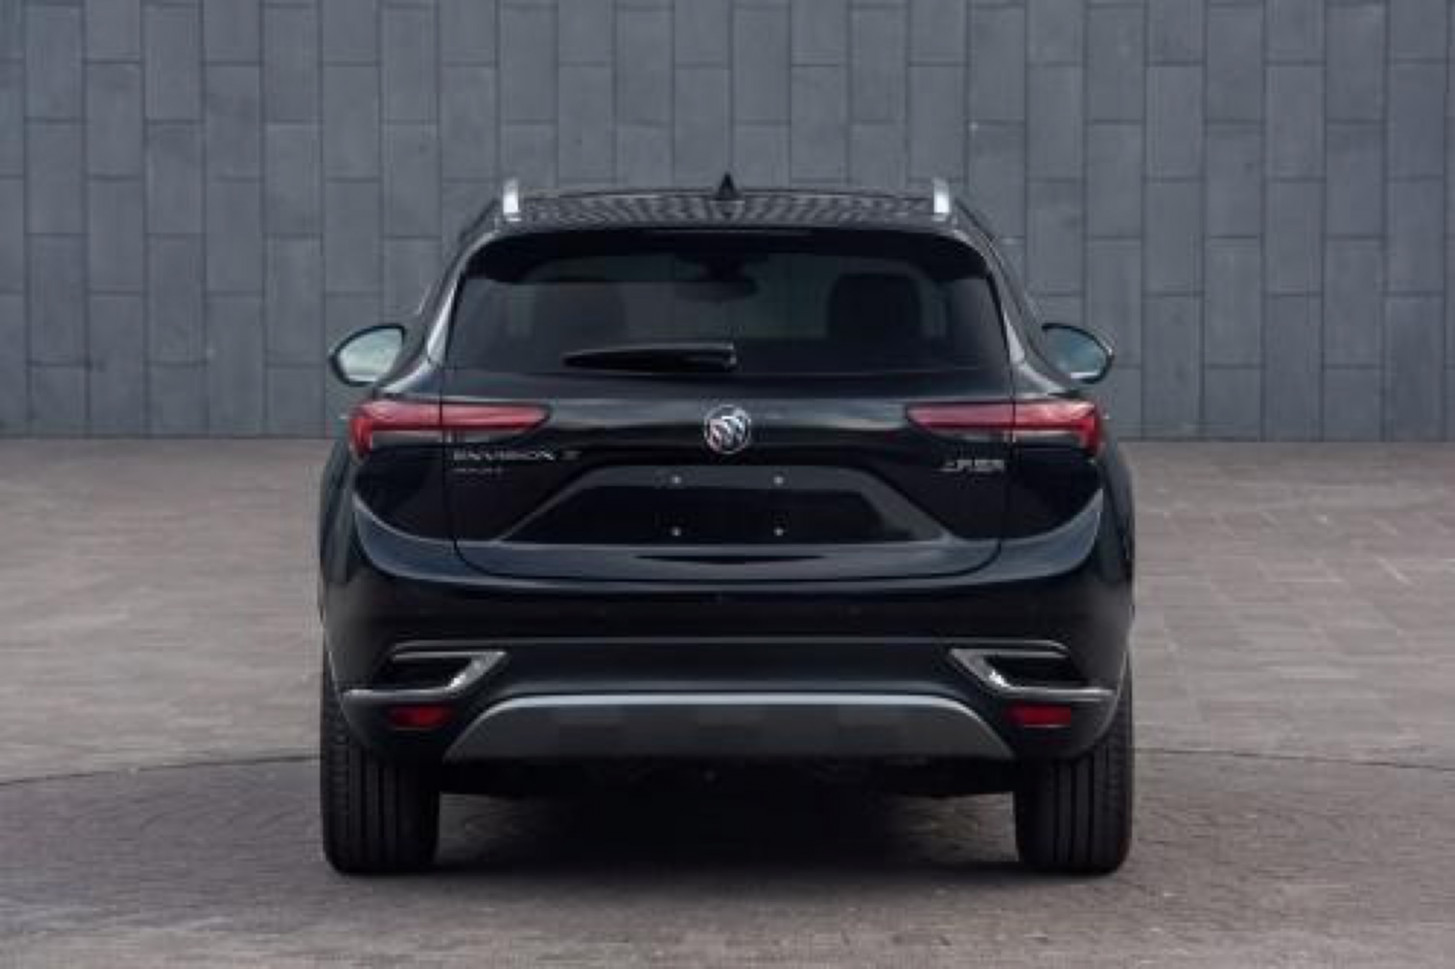 Redesign and Concept 2022 Buick Enspire